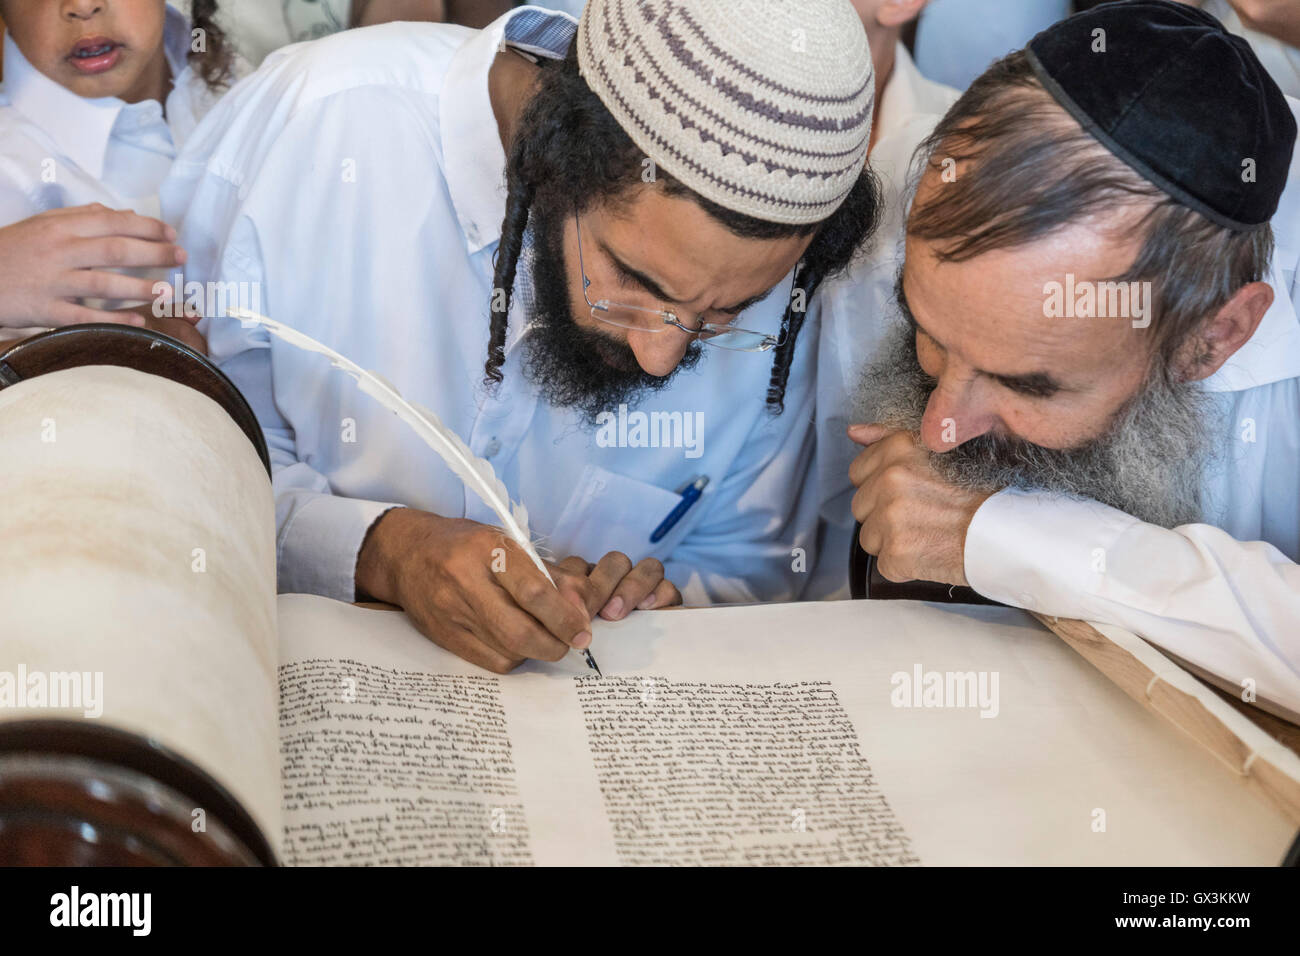 Neria, Israel. 15th September, 2016. A scrivener helps a man to write the last letters in the holy  Torah scroll - Stock Image